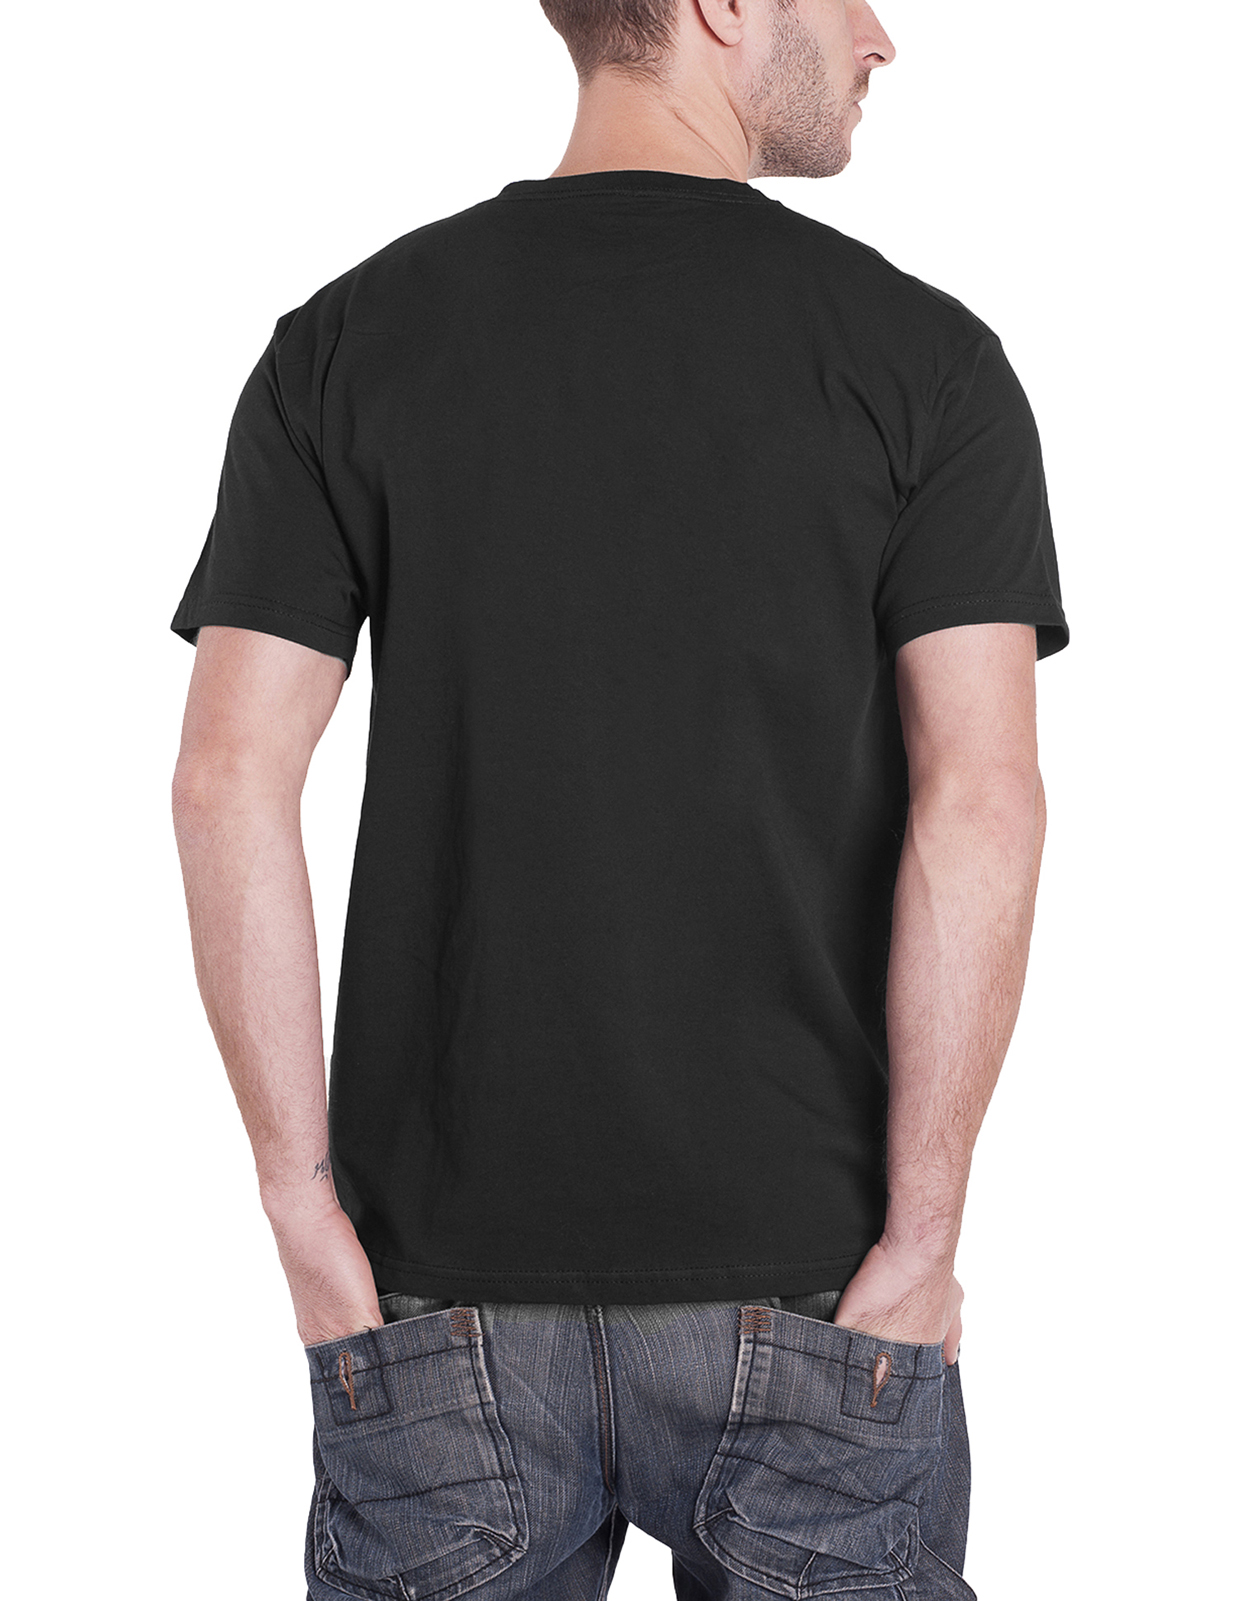 Star-Wars-T-Shirt-Last-Jedi-Stormtrooper-Vader-Han-Solo-official-new-mens thumbnail 21